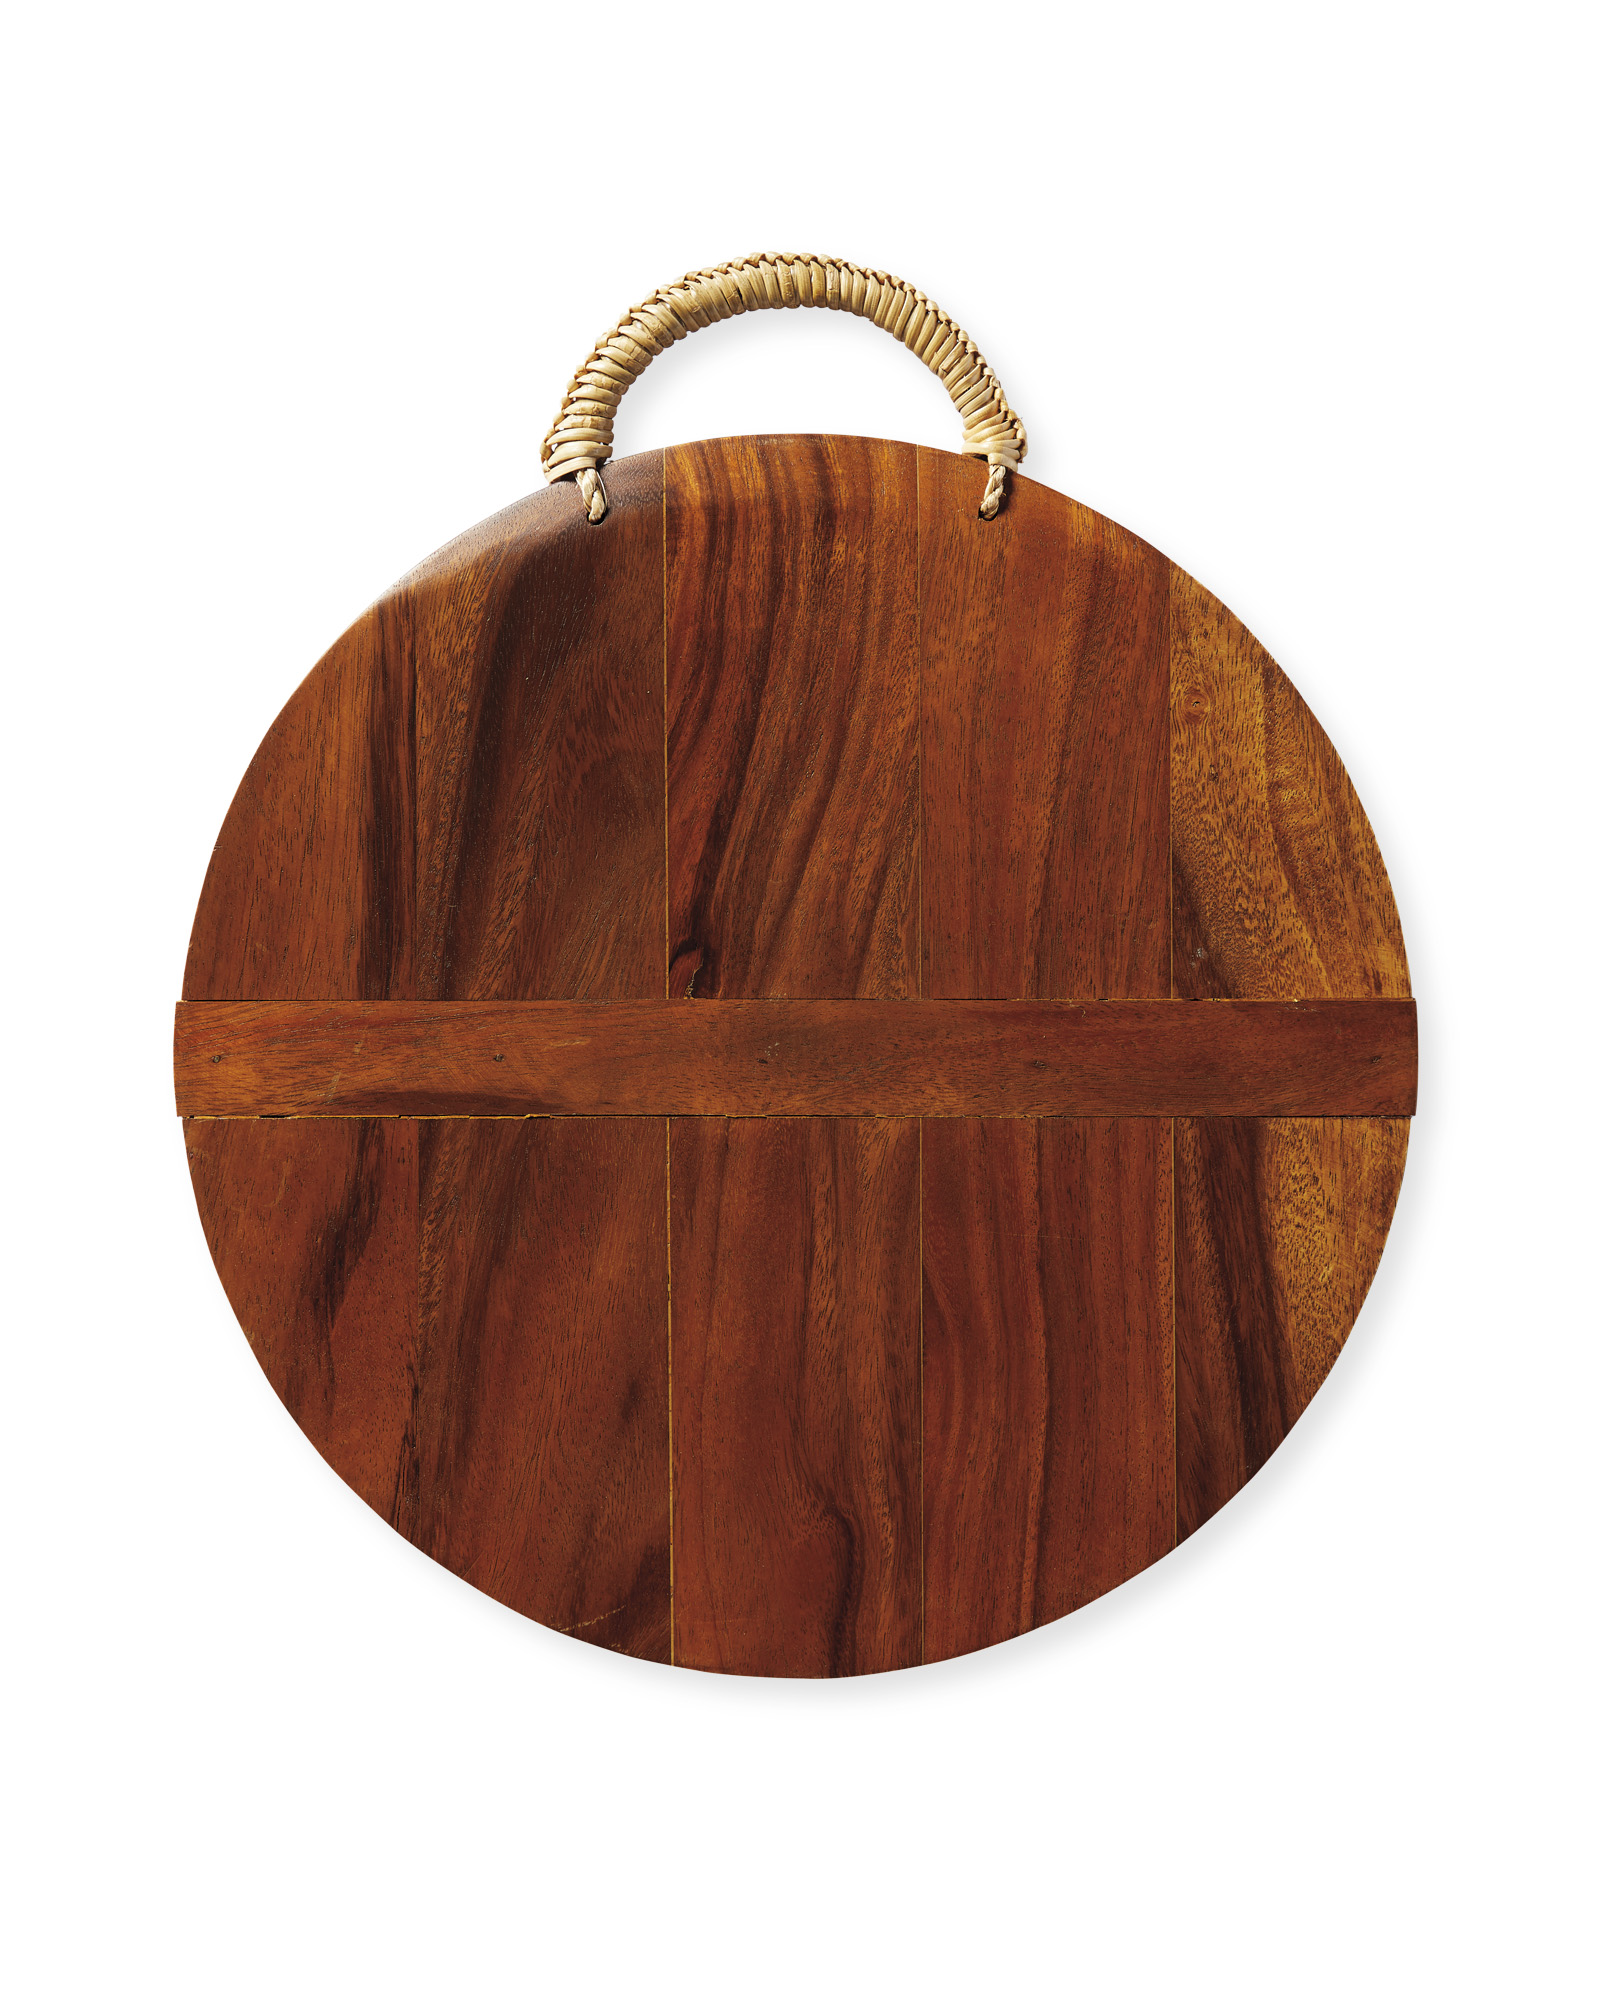 Rhinebeck Serving Board,